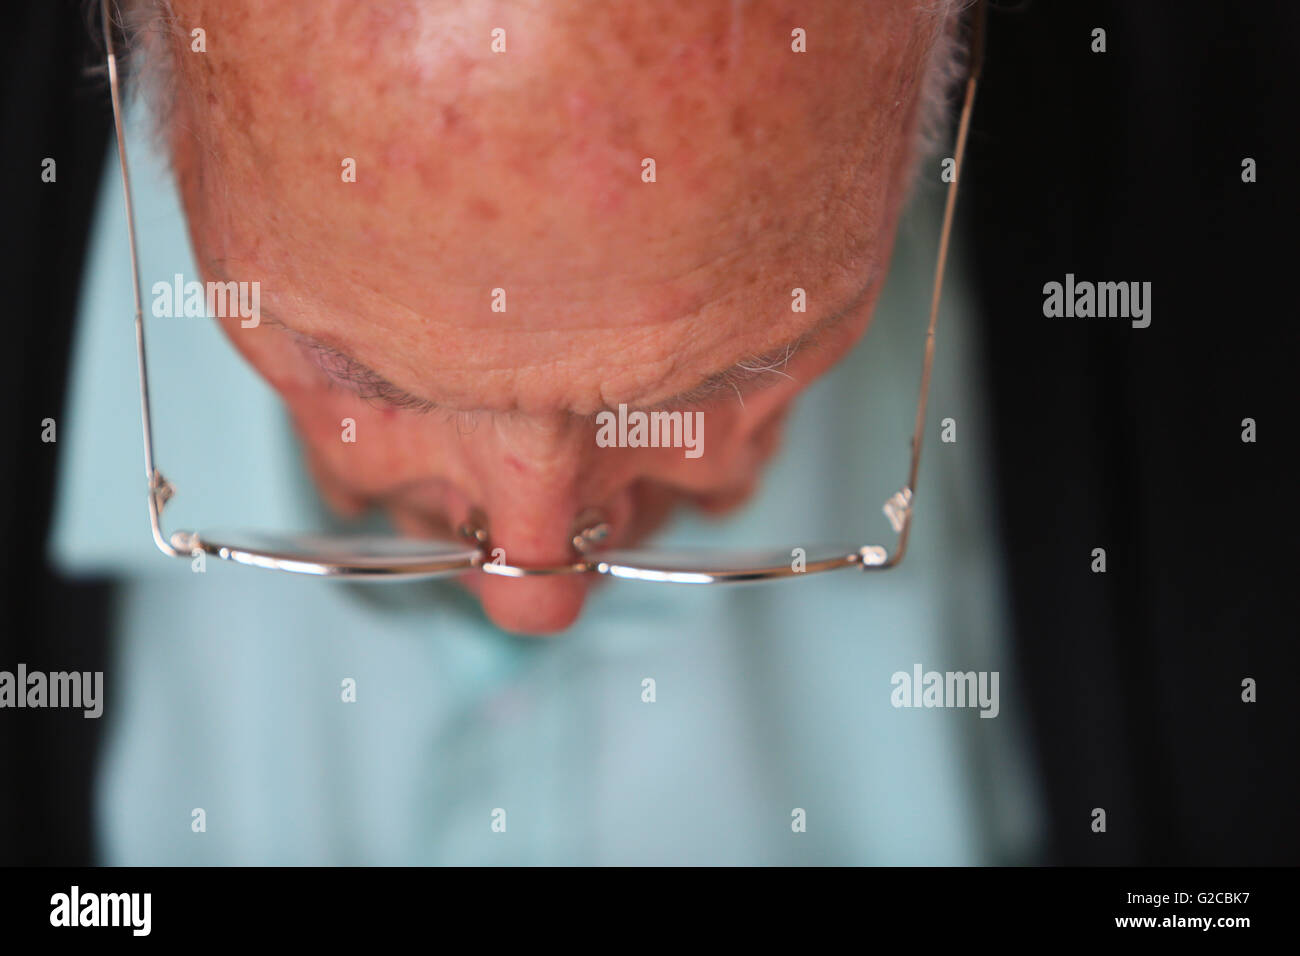 A man in his 80's wearing glasses looking downwards reading - Stock Image